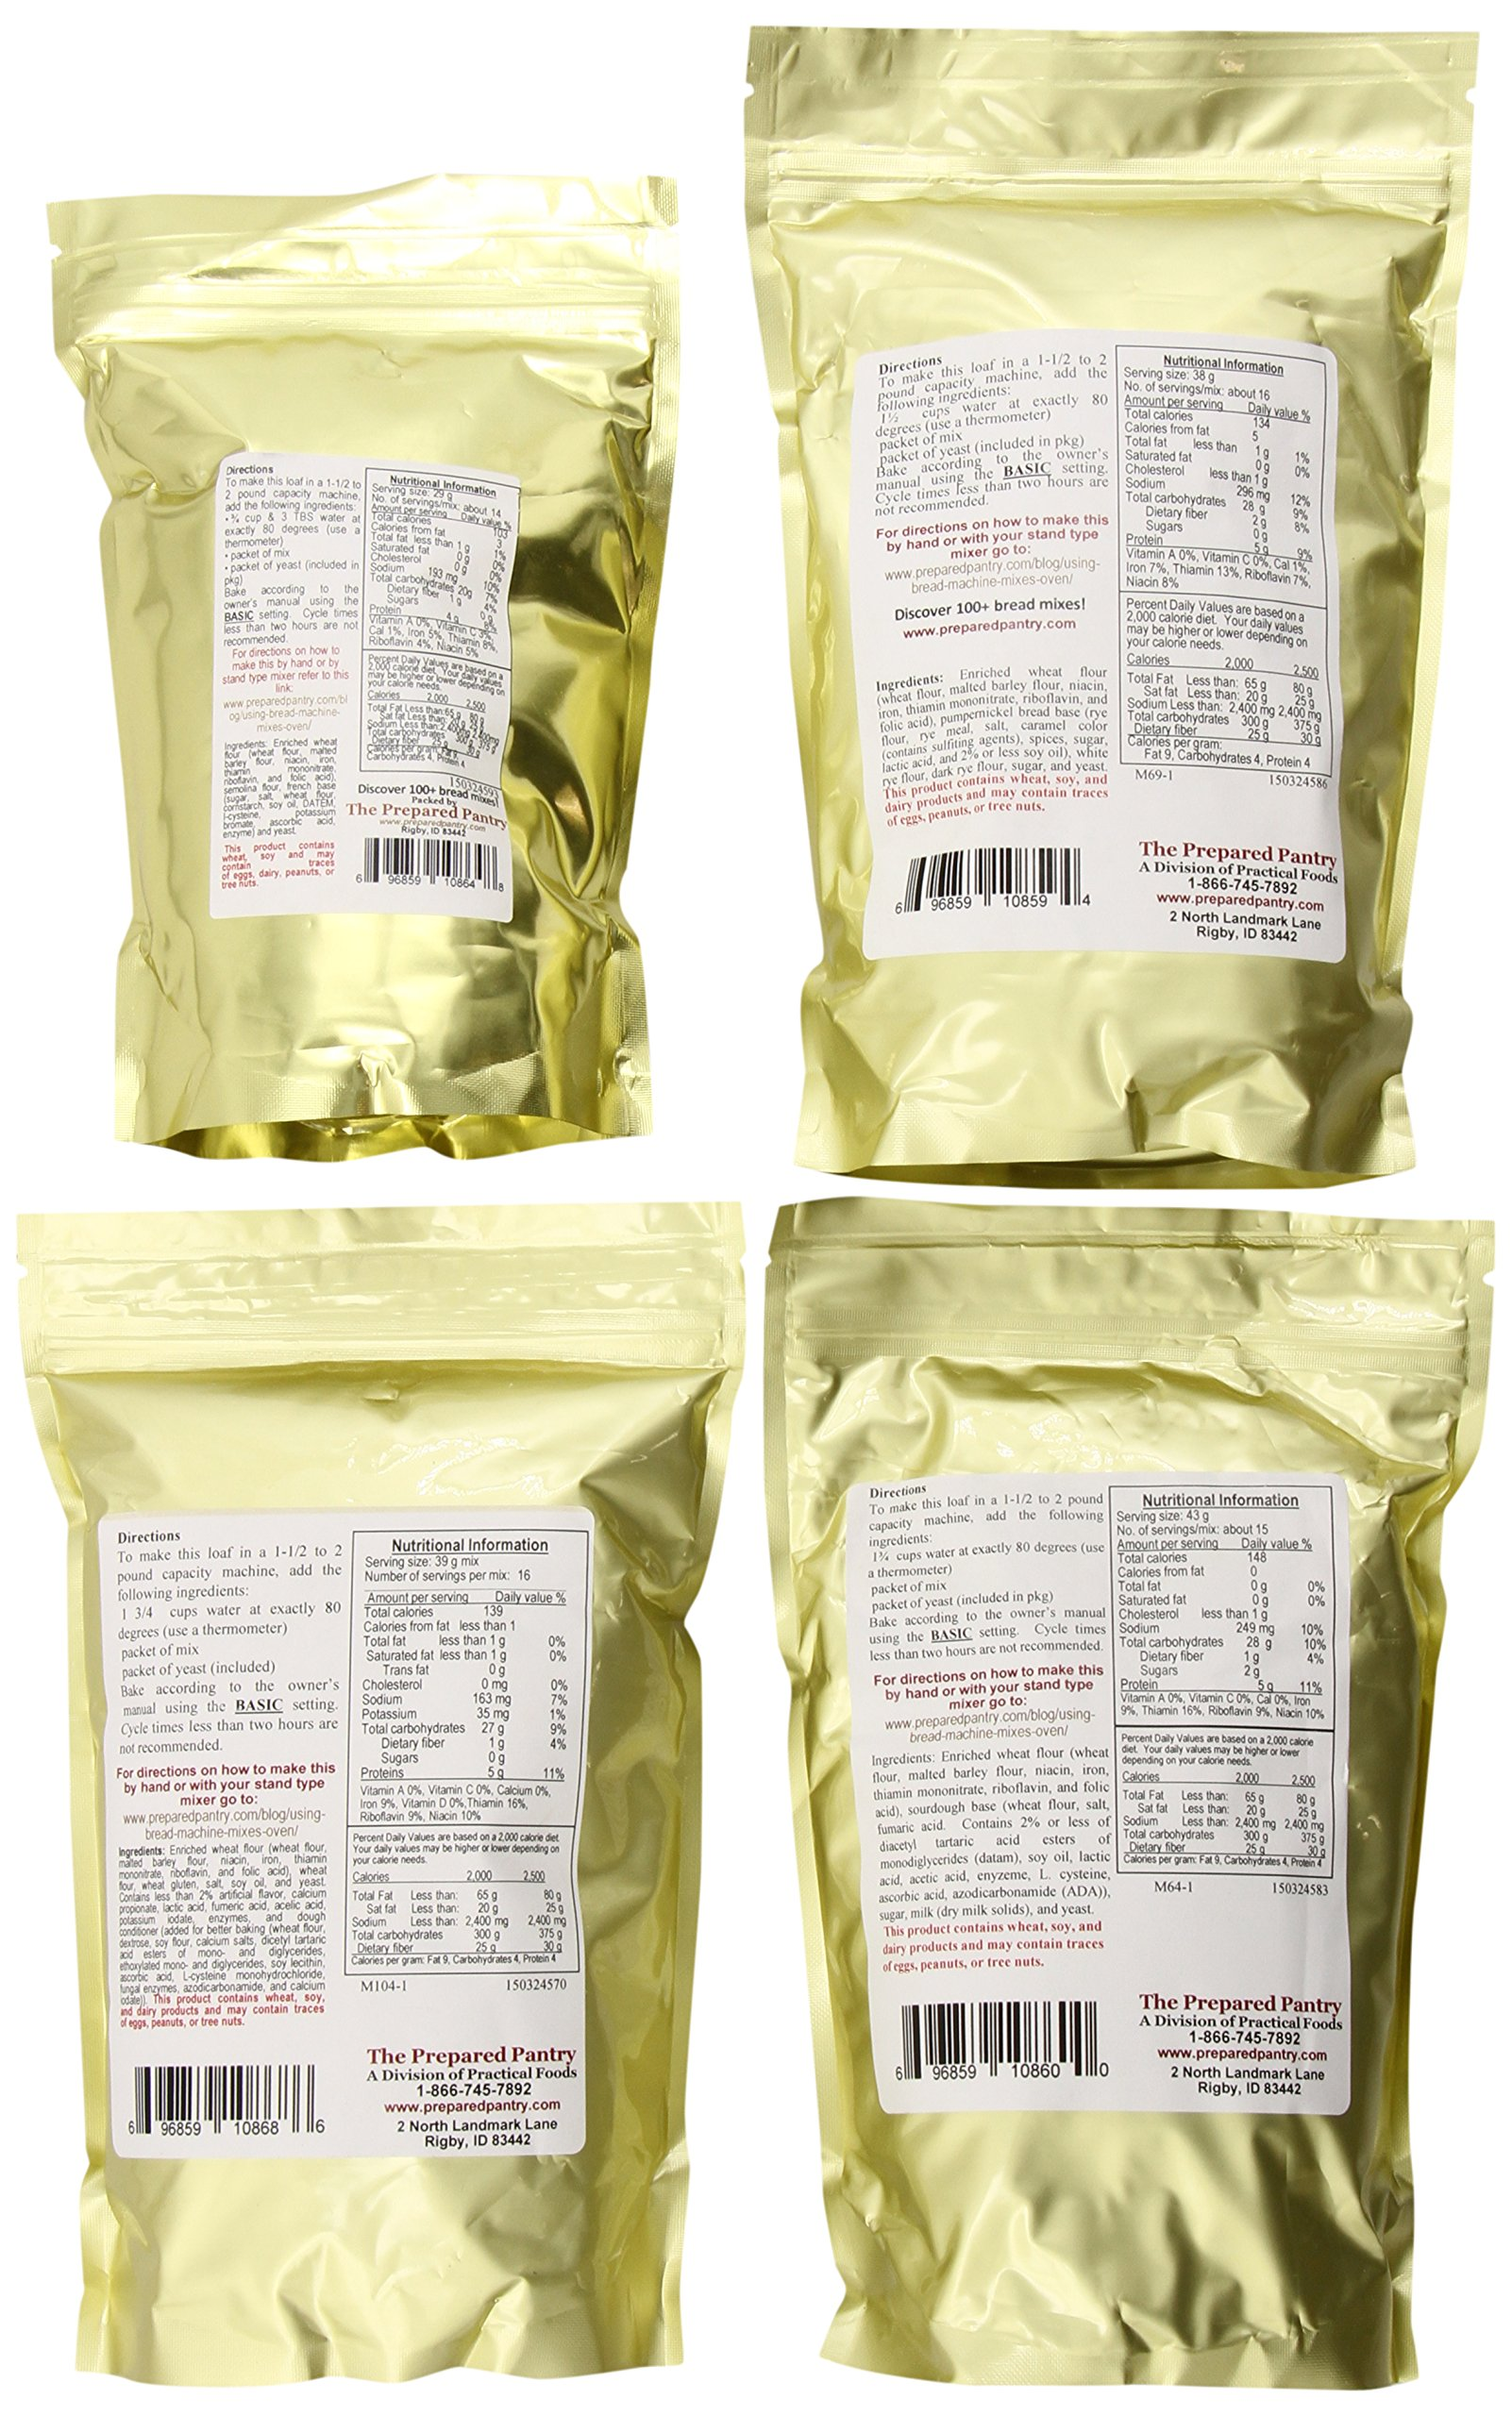 The Prepared Pantry International Collection, 81.2 Ounce by The Prepared Pantry (Image #2)